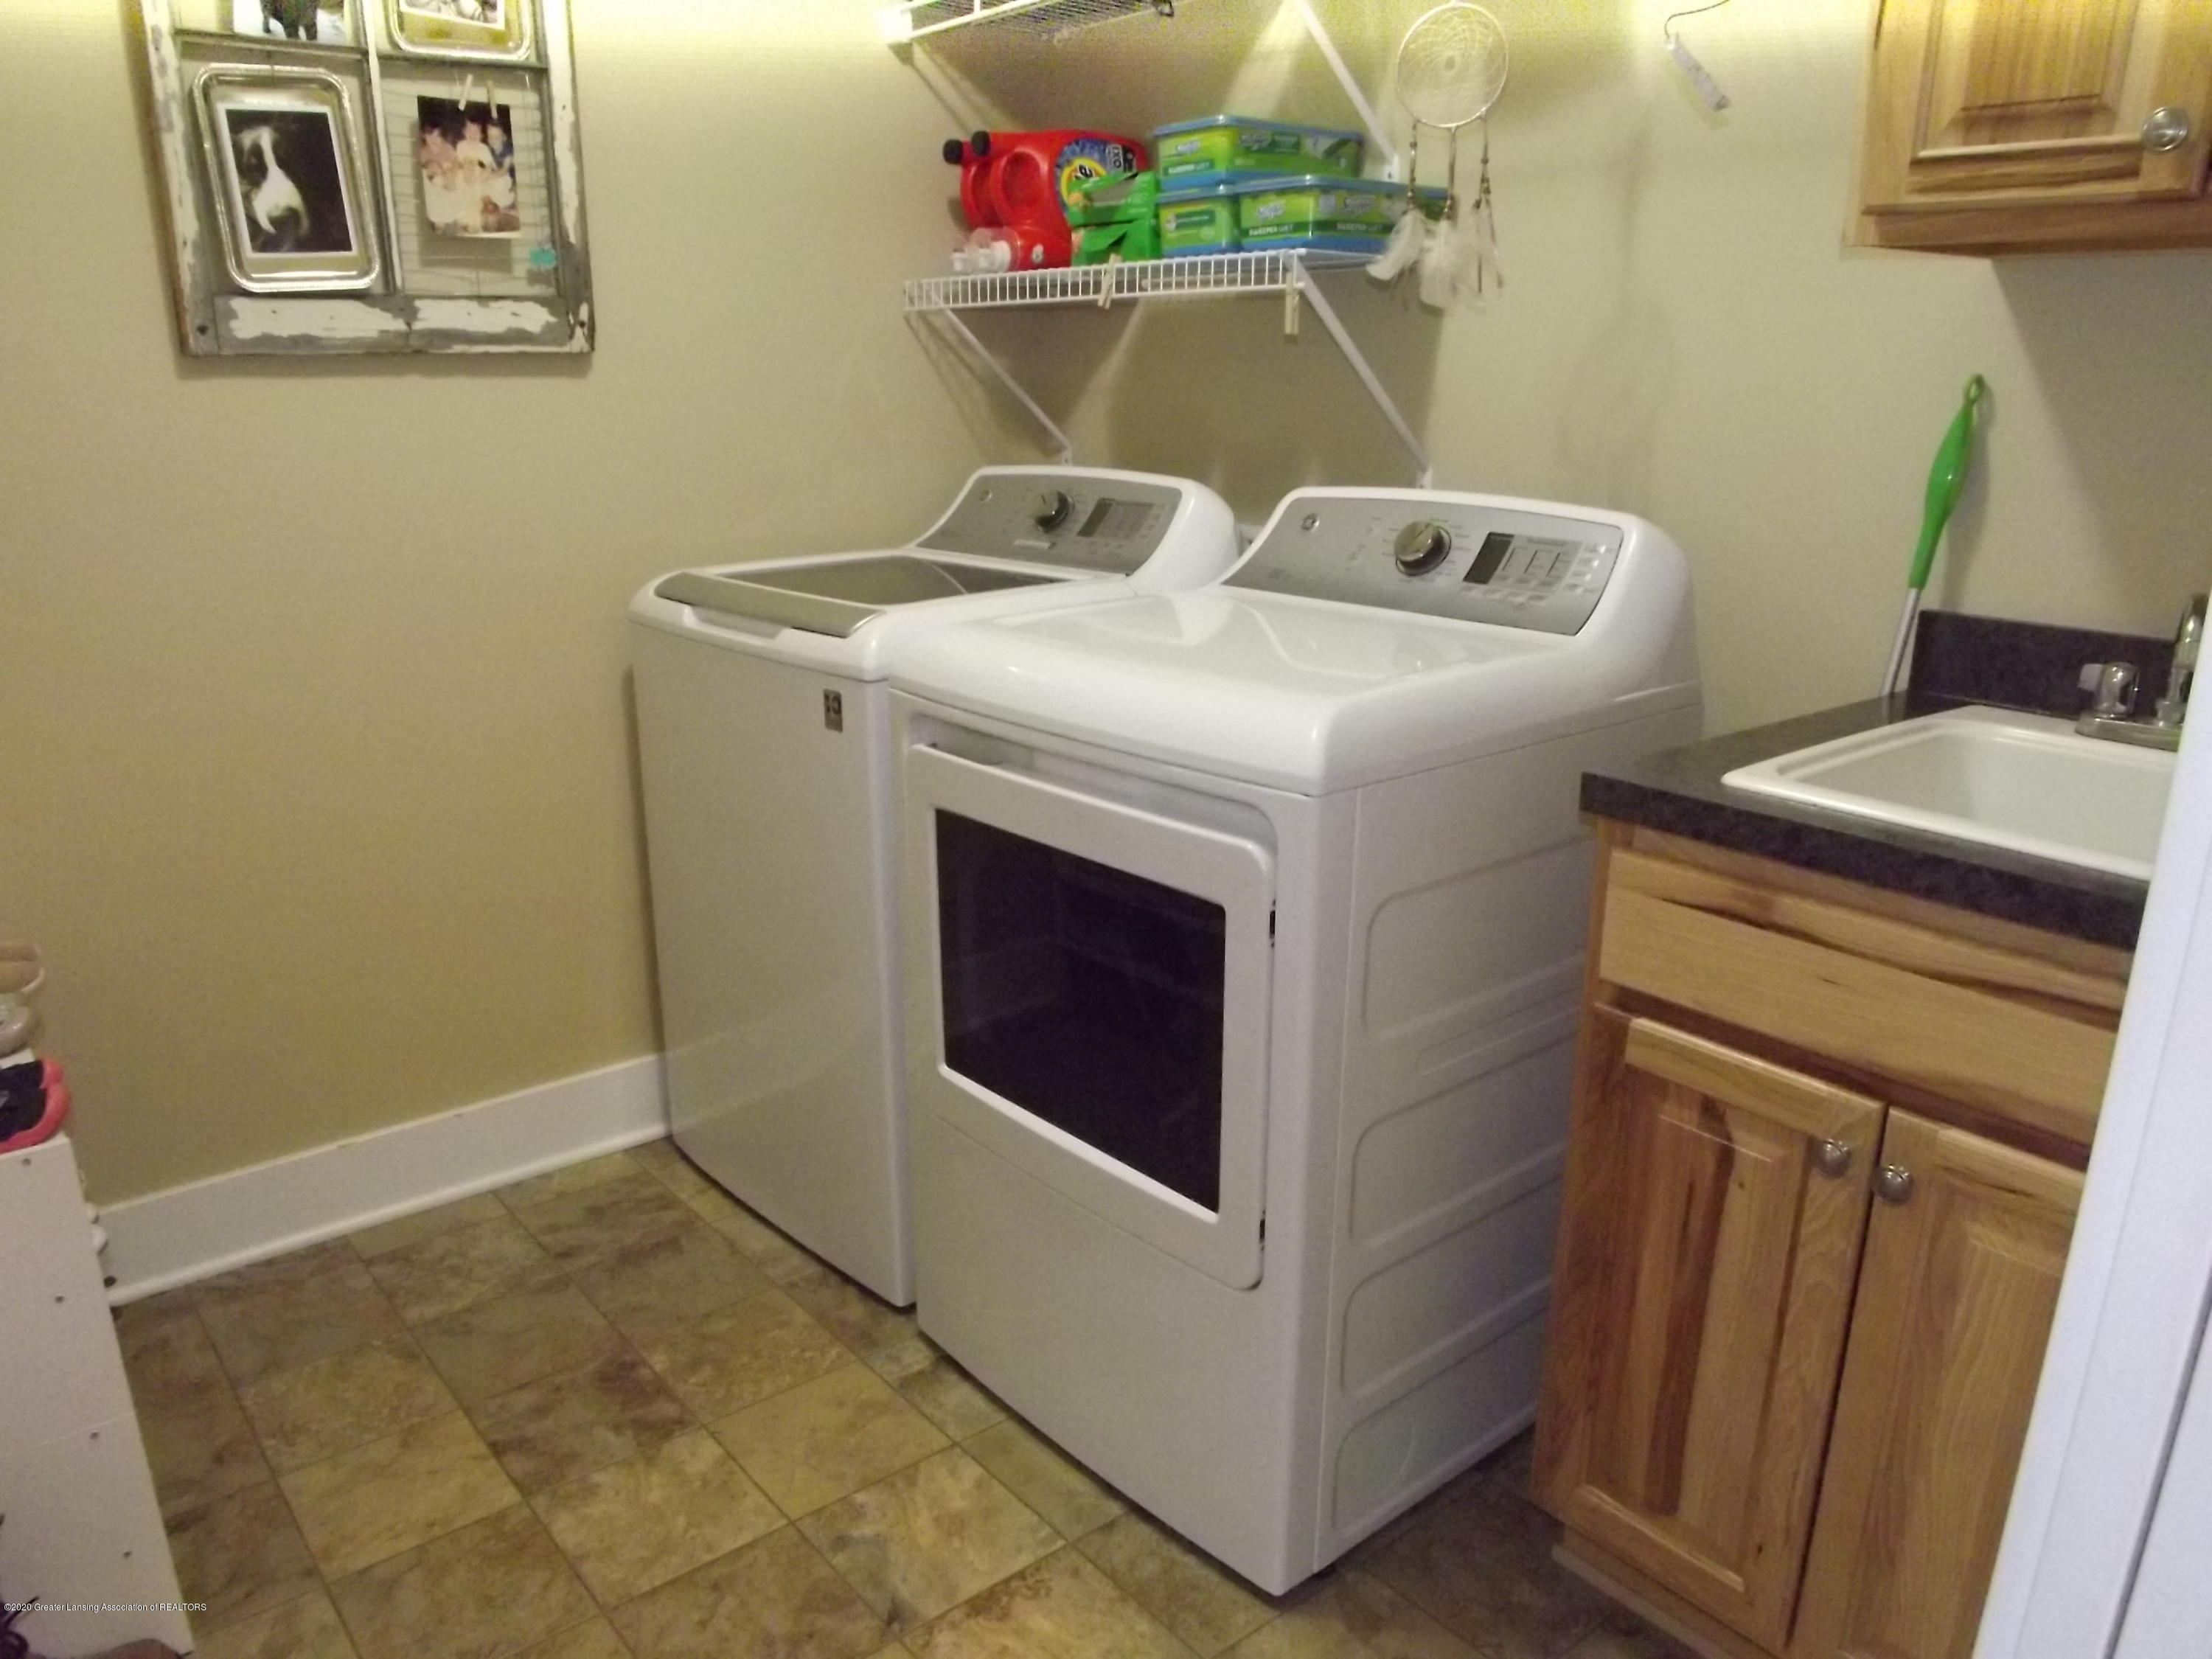 2126 Guernsey Dr - 17 Laundry - 17